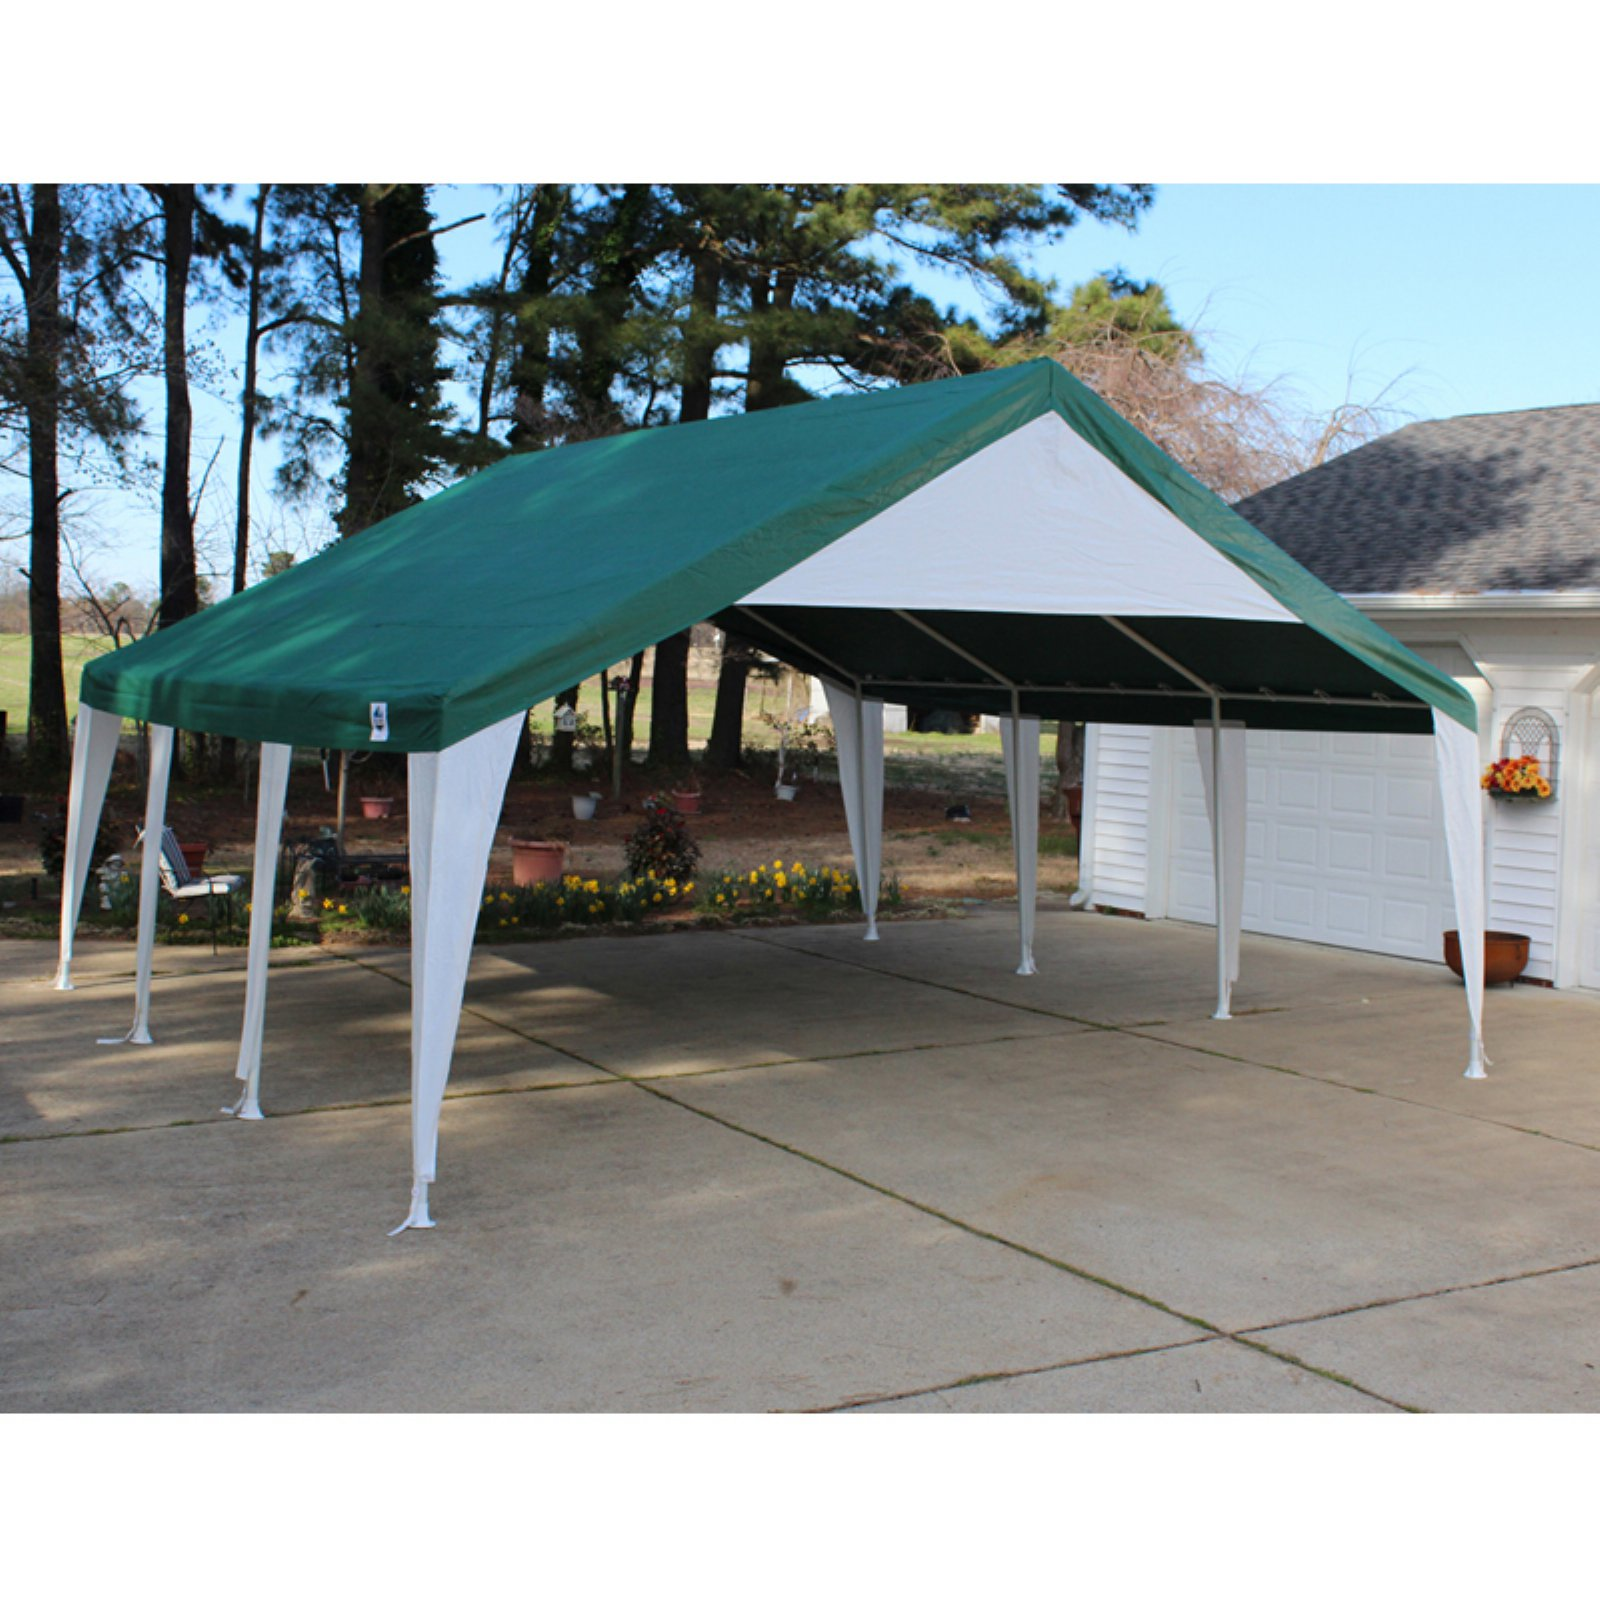 King Canopy 20 x 20 ft. Green and White Event Tent  sc 1 st  Walmart & King Canopy 20 x 20 ft. Green and White Event Tent - Walmart.com